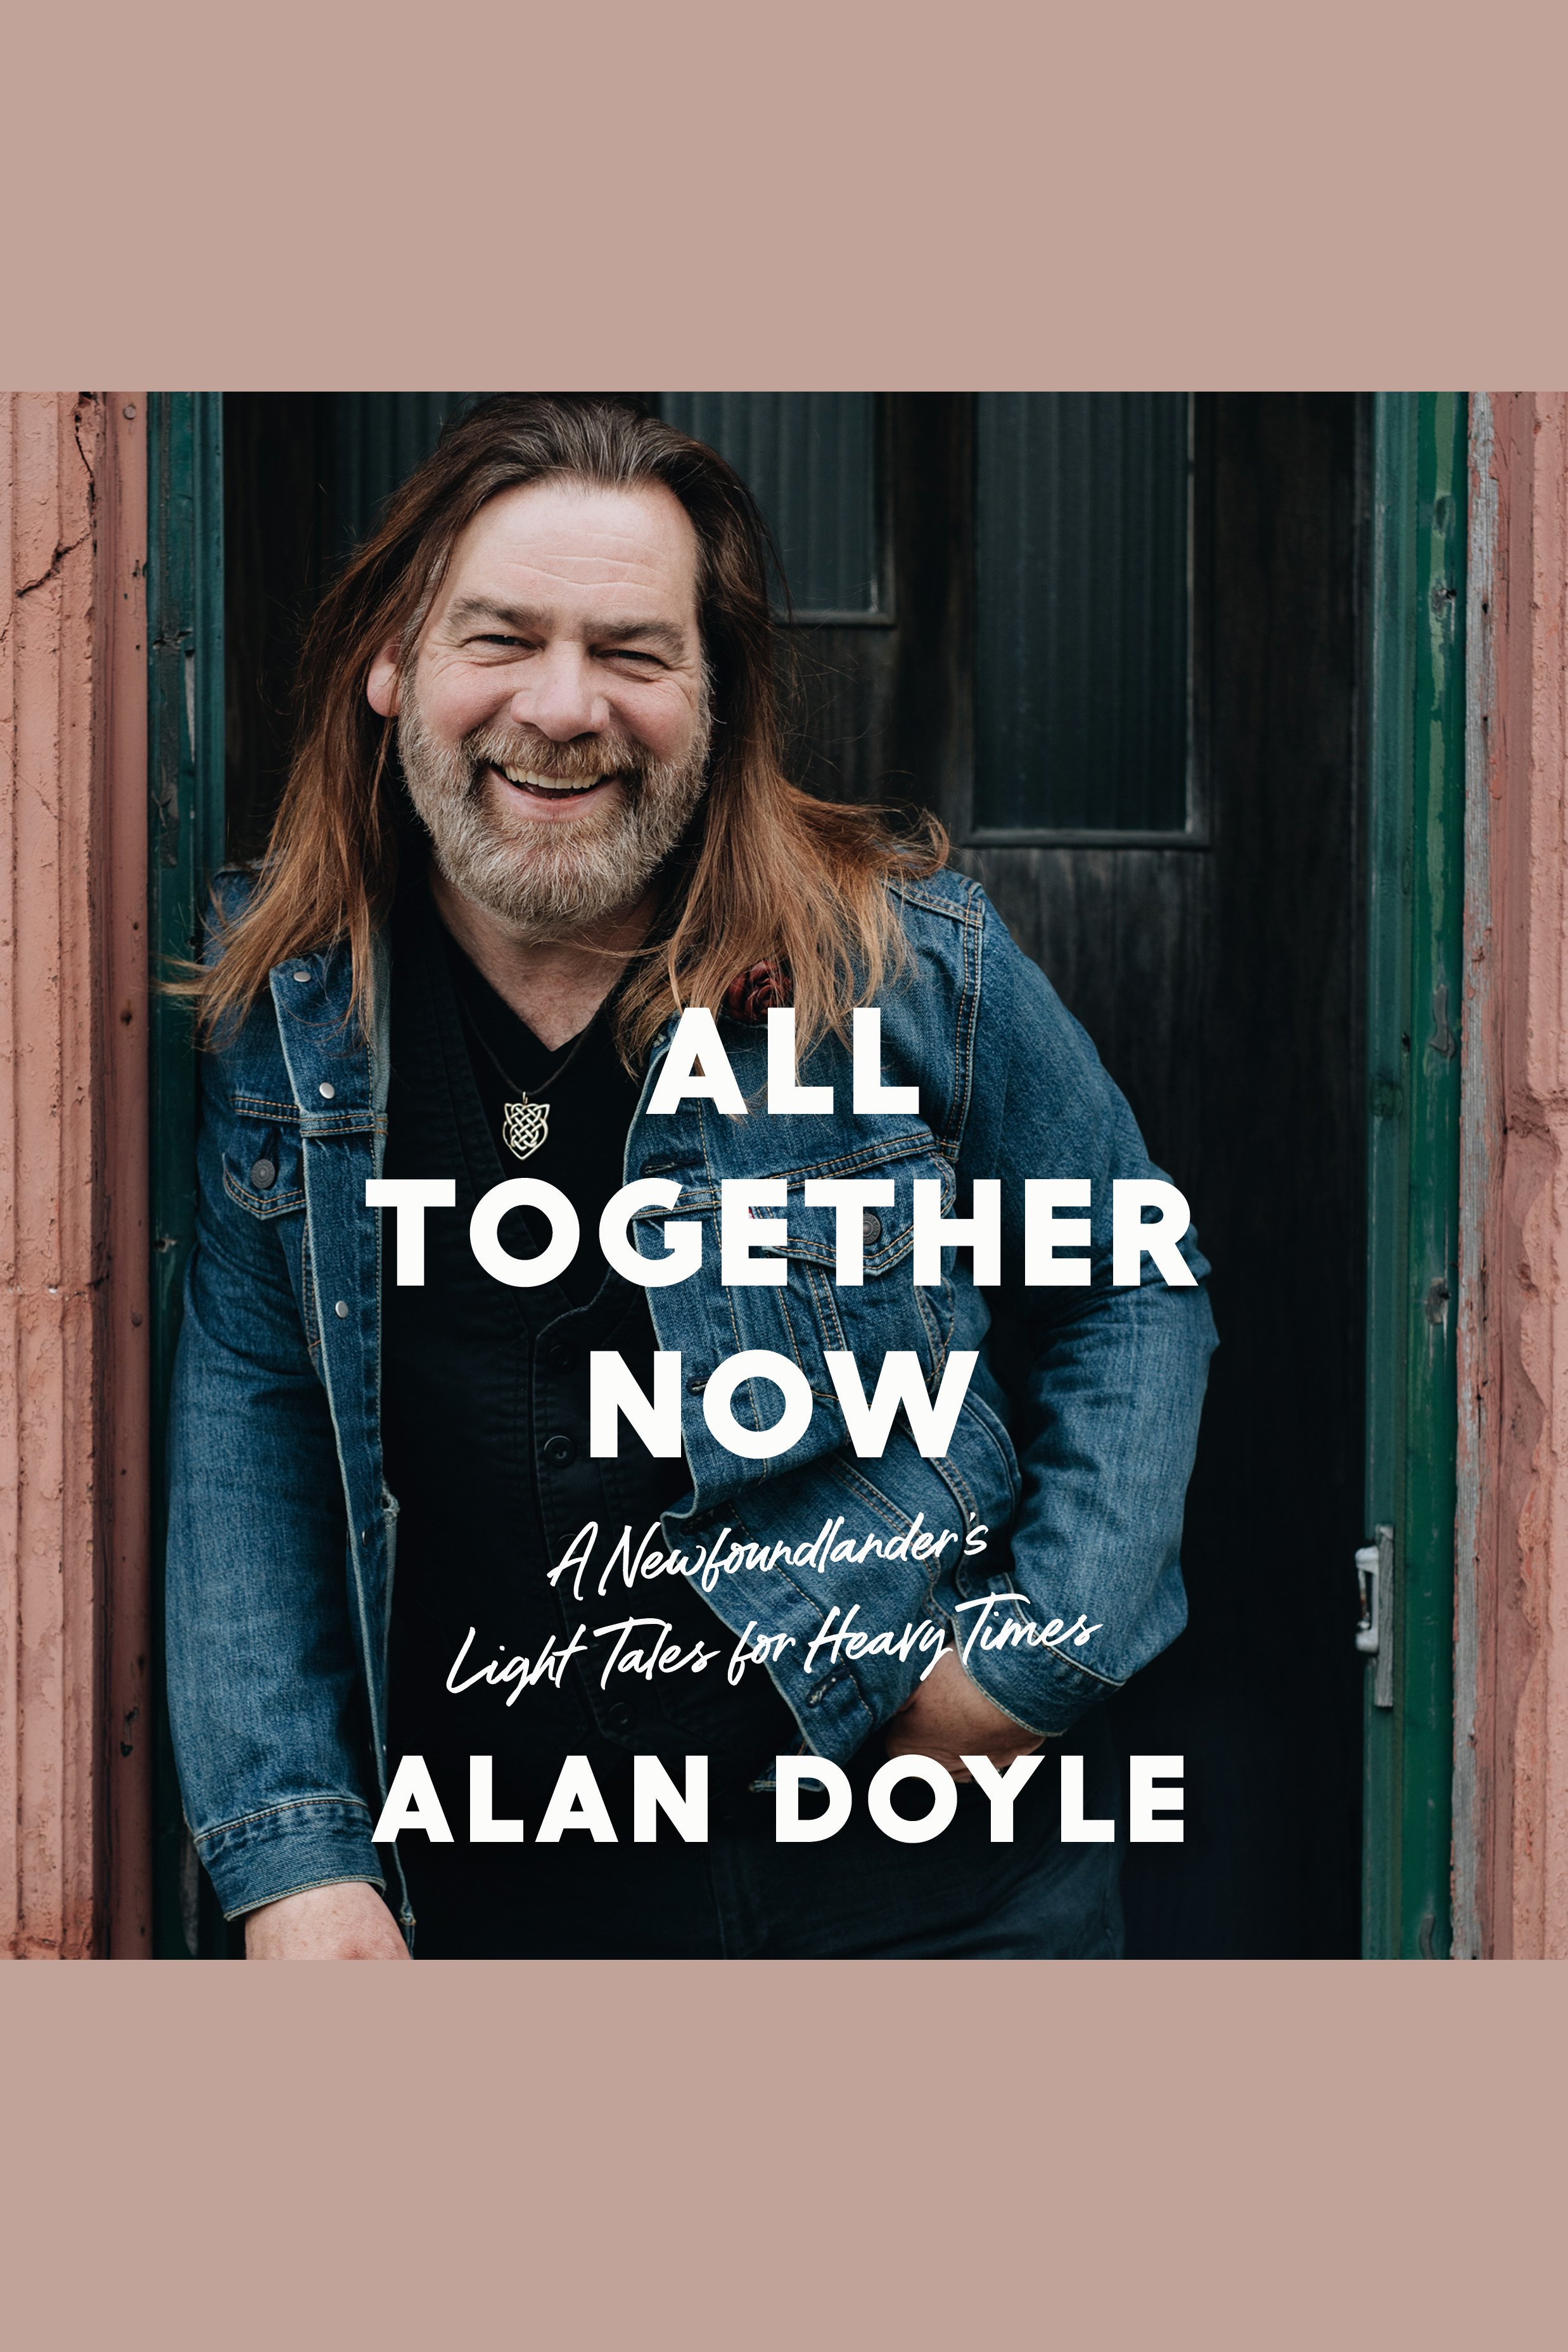 All Together Now A Newfoundlander's Light Tales for Heavy Times